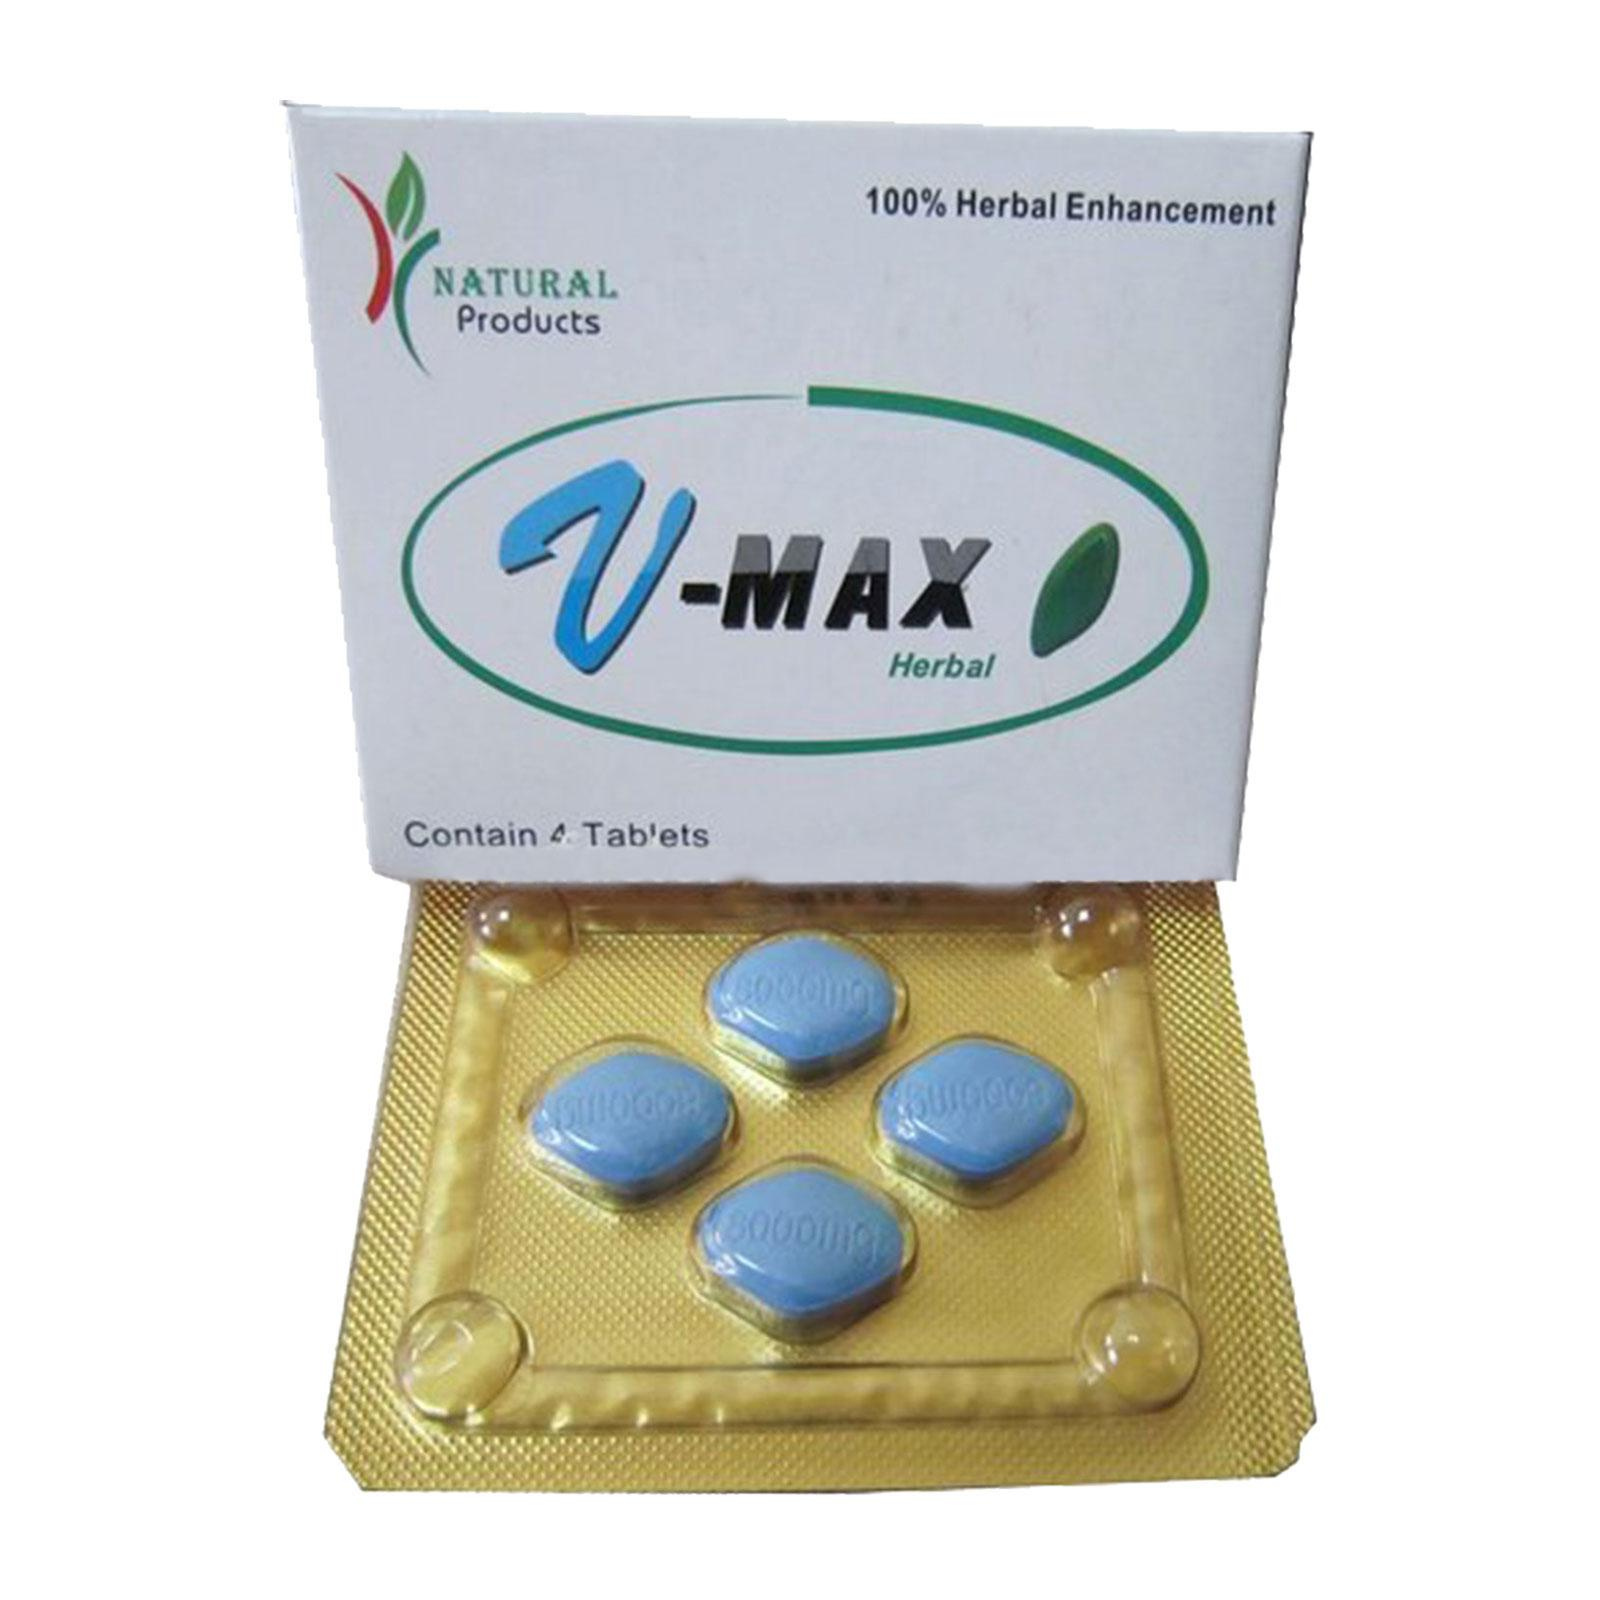 Factory Price 100% Herbal Enhancement V-Max Herbal Blue Sex Pills 8000mg For Sale